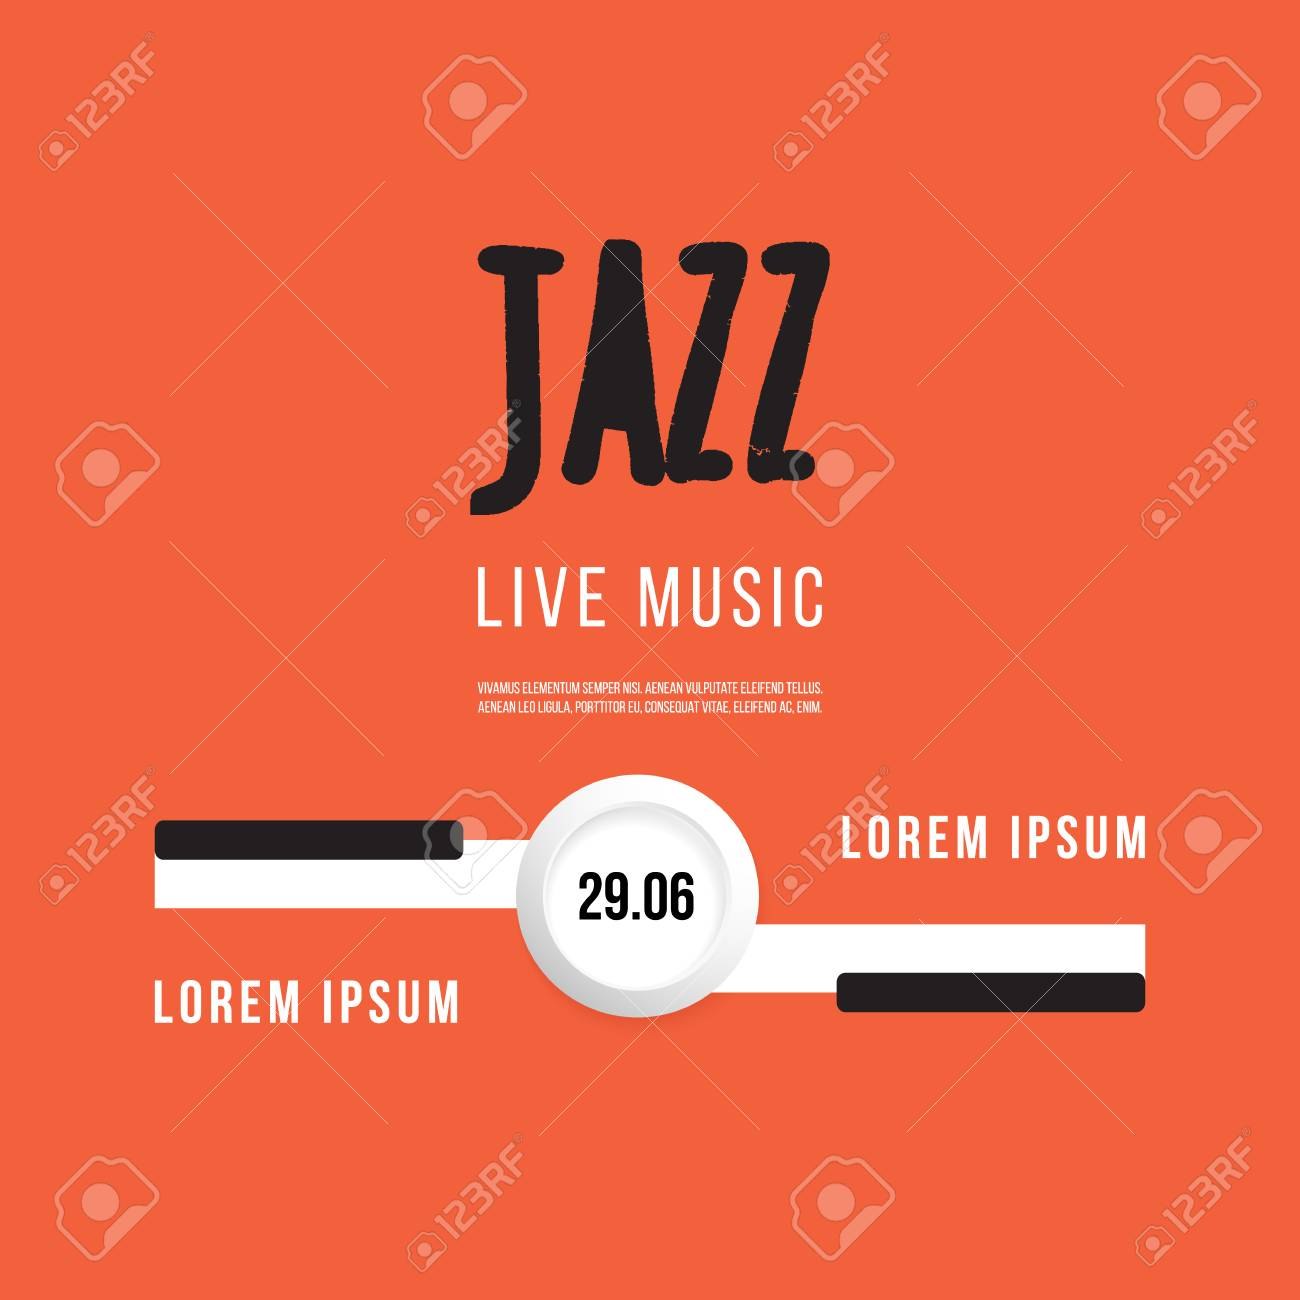 Jazz Music Festival Poster Background Template Keyboard With Keys Flyer Vector Design